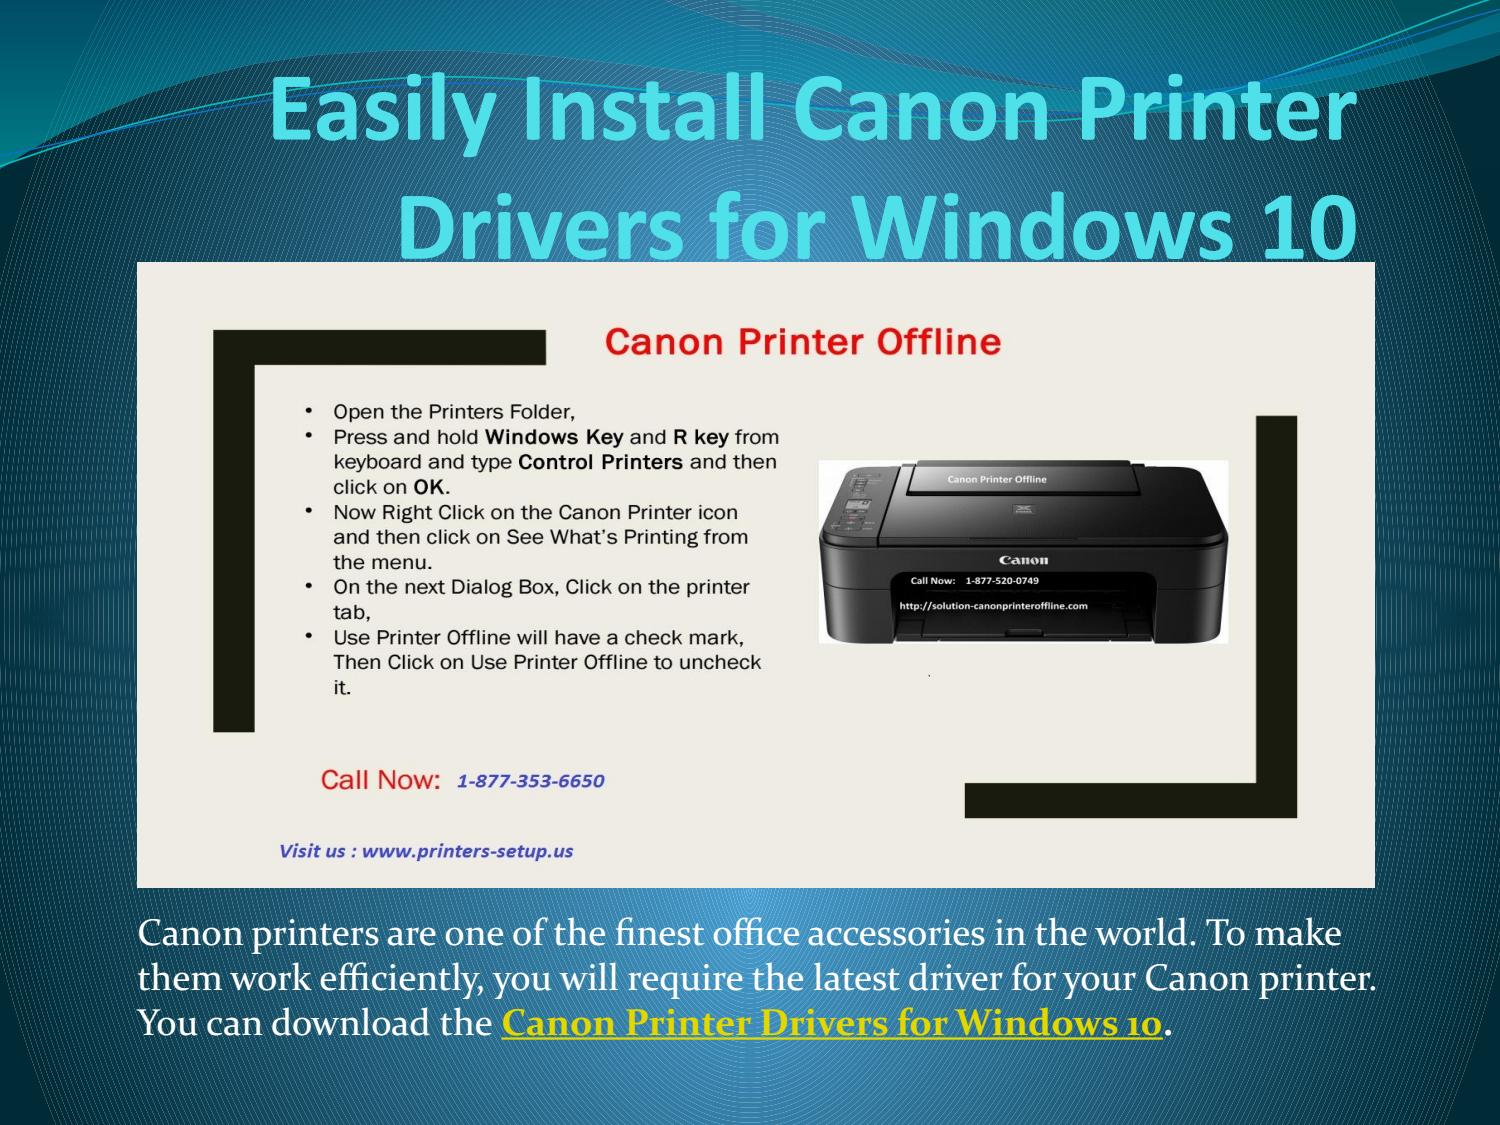 Canon printers drivers for windows 20  canon printer Offline by ...